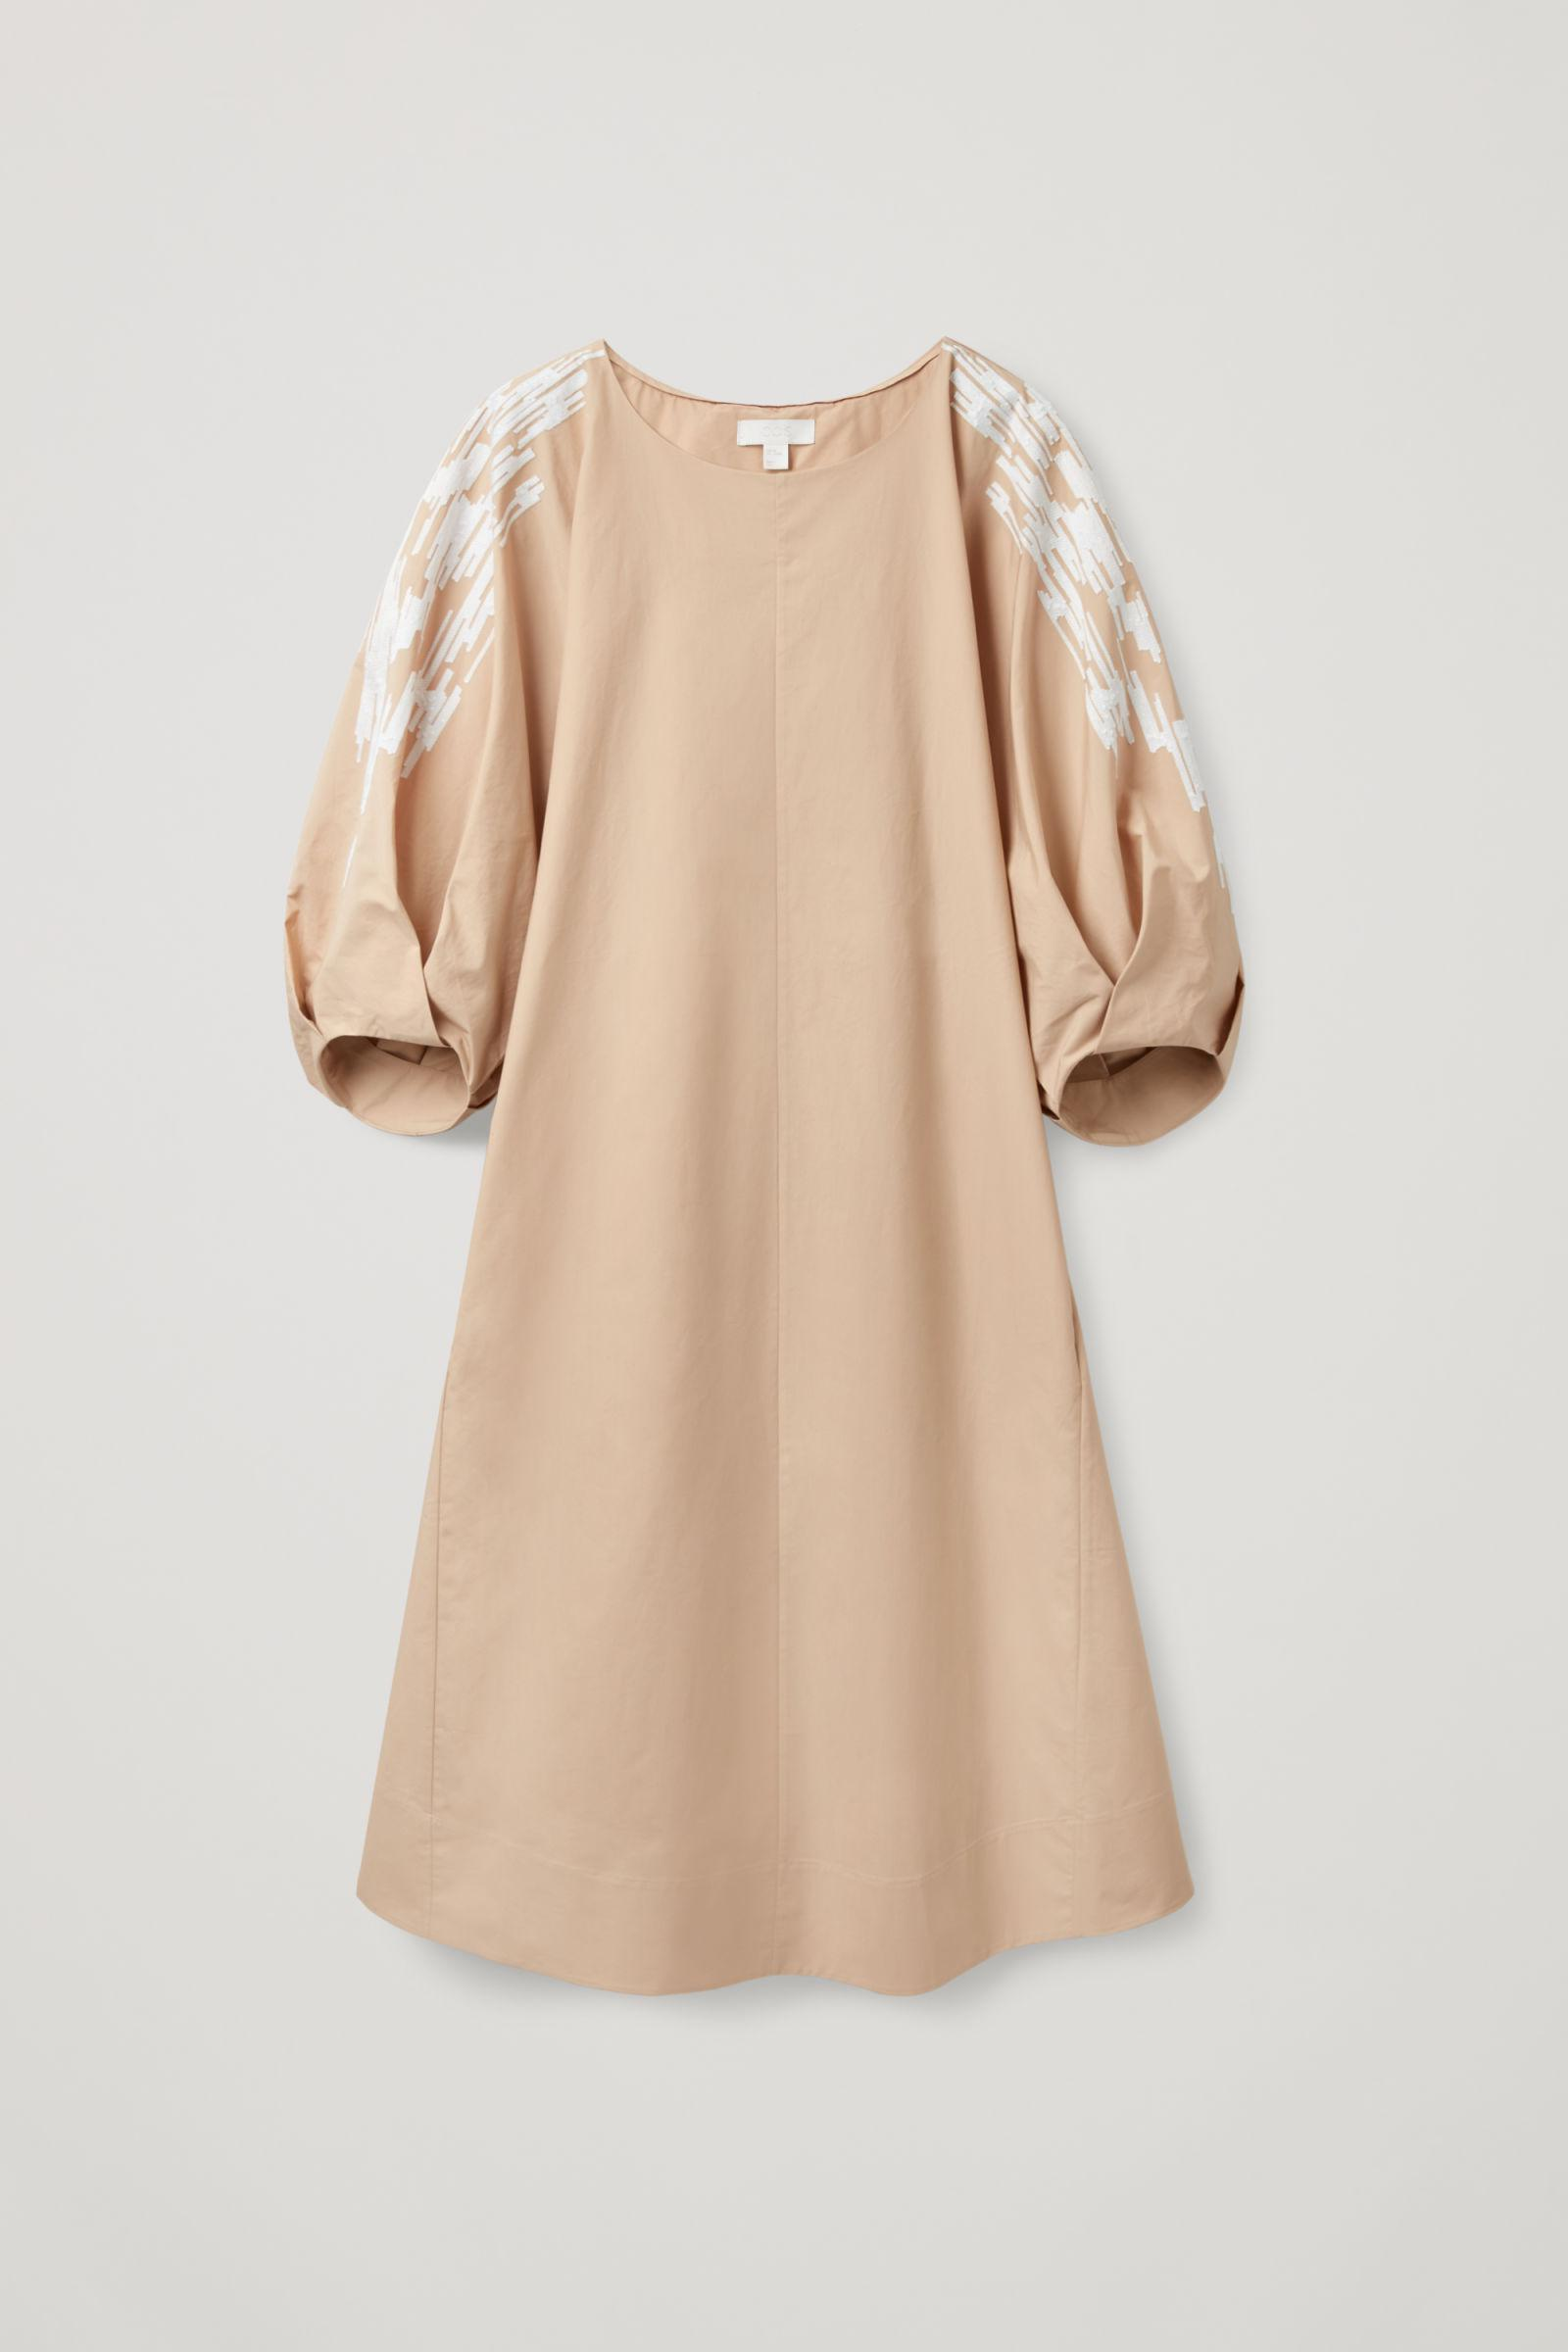 EMBROIDERED PUFF SLEEVE DRESS 5